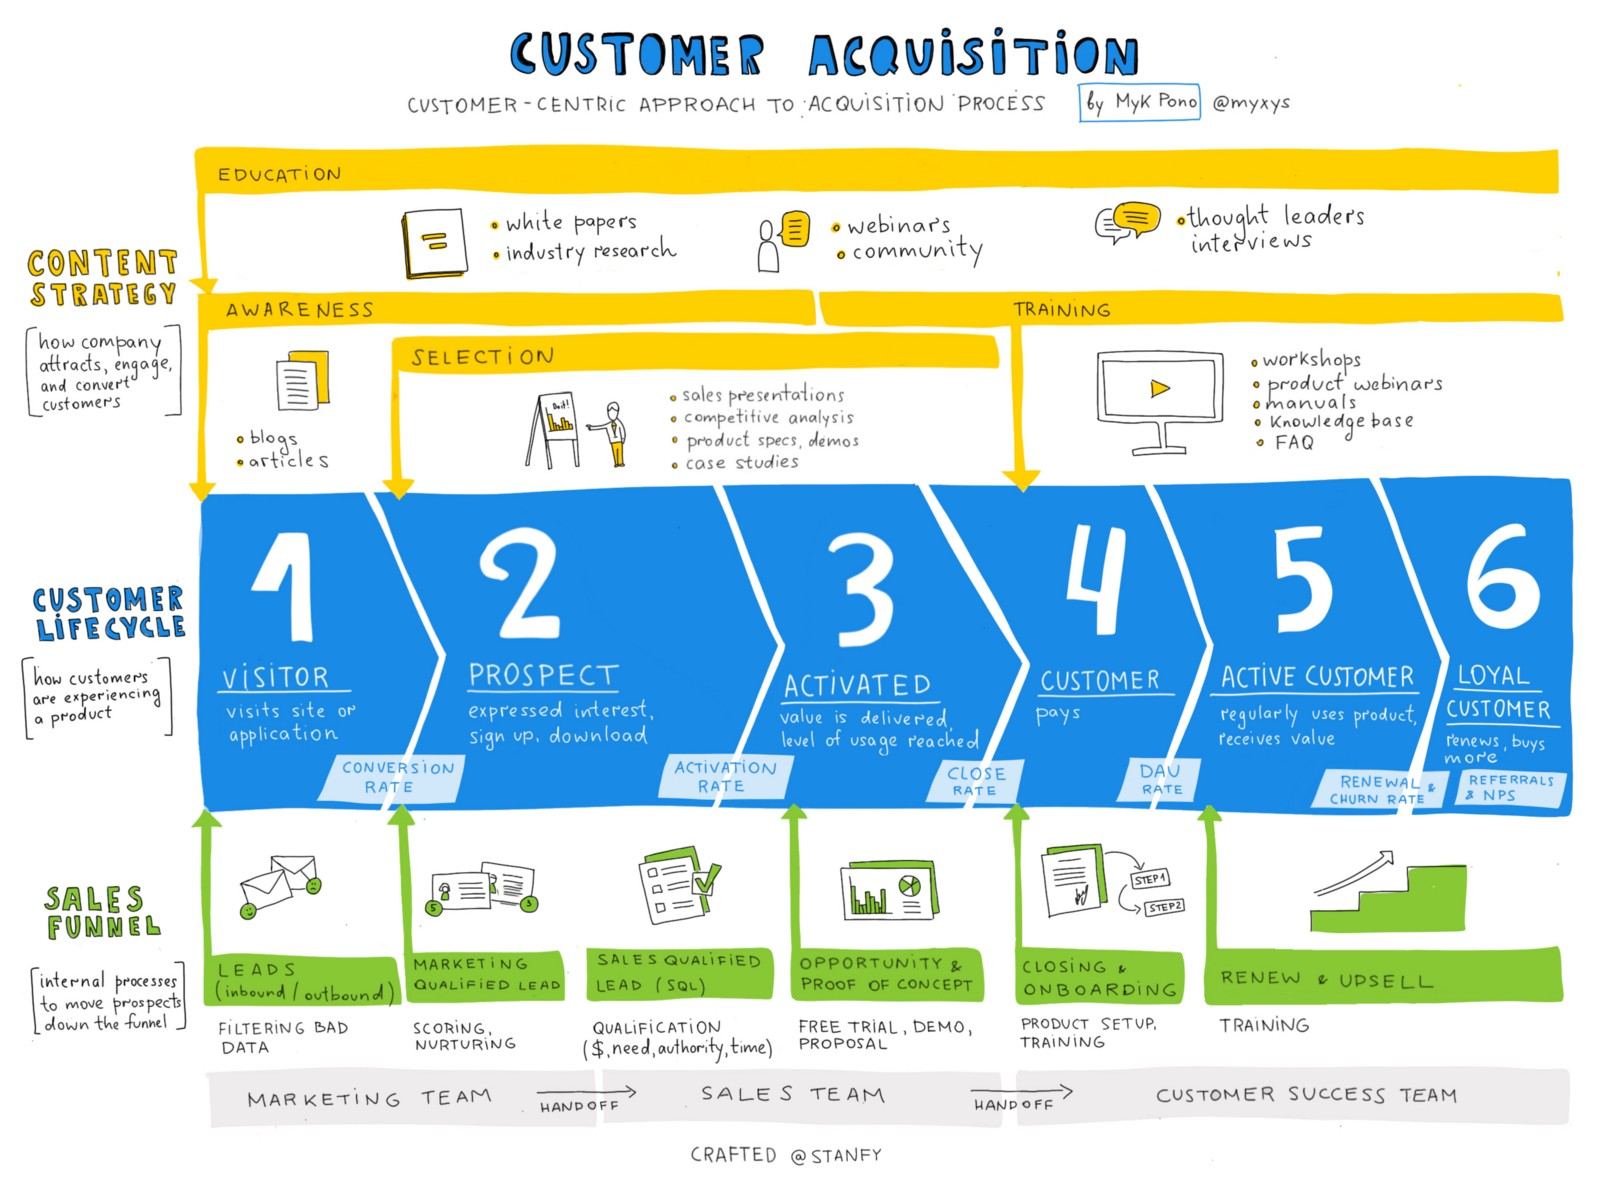 How to track customer acquisitions myk pono medium infographic by anna iurchenko from stanfy fandeluxe Choice Image